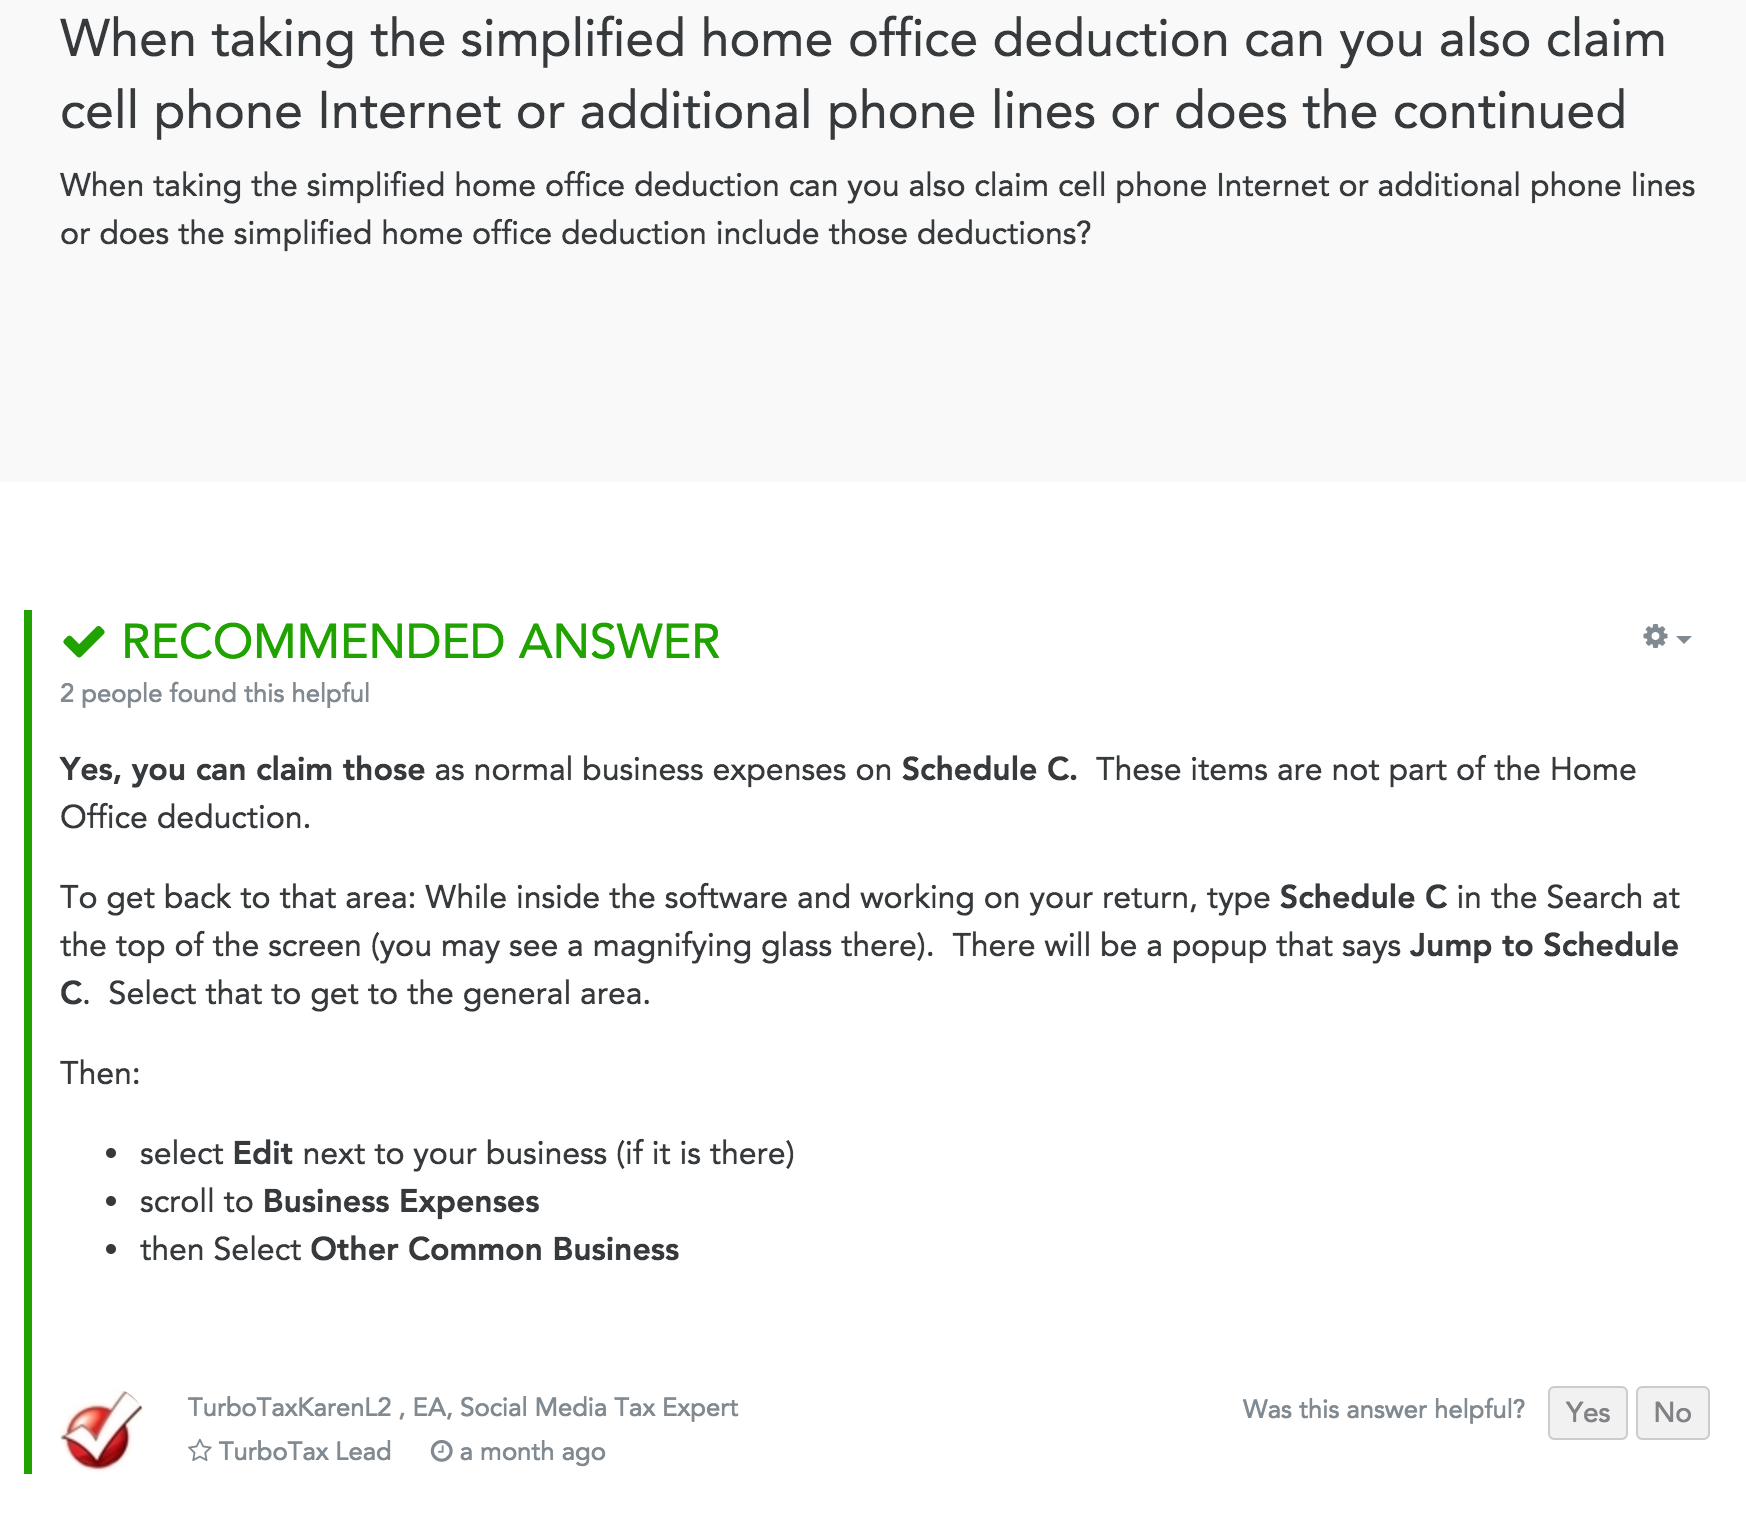 Is Internet Included In The Simplified Home Deduction